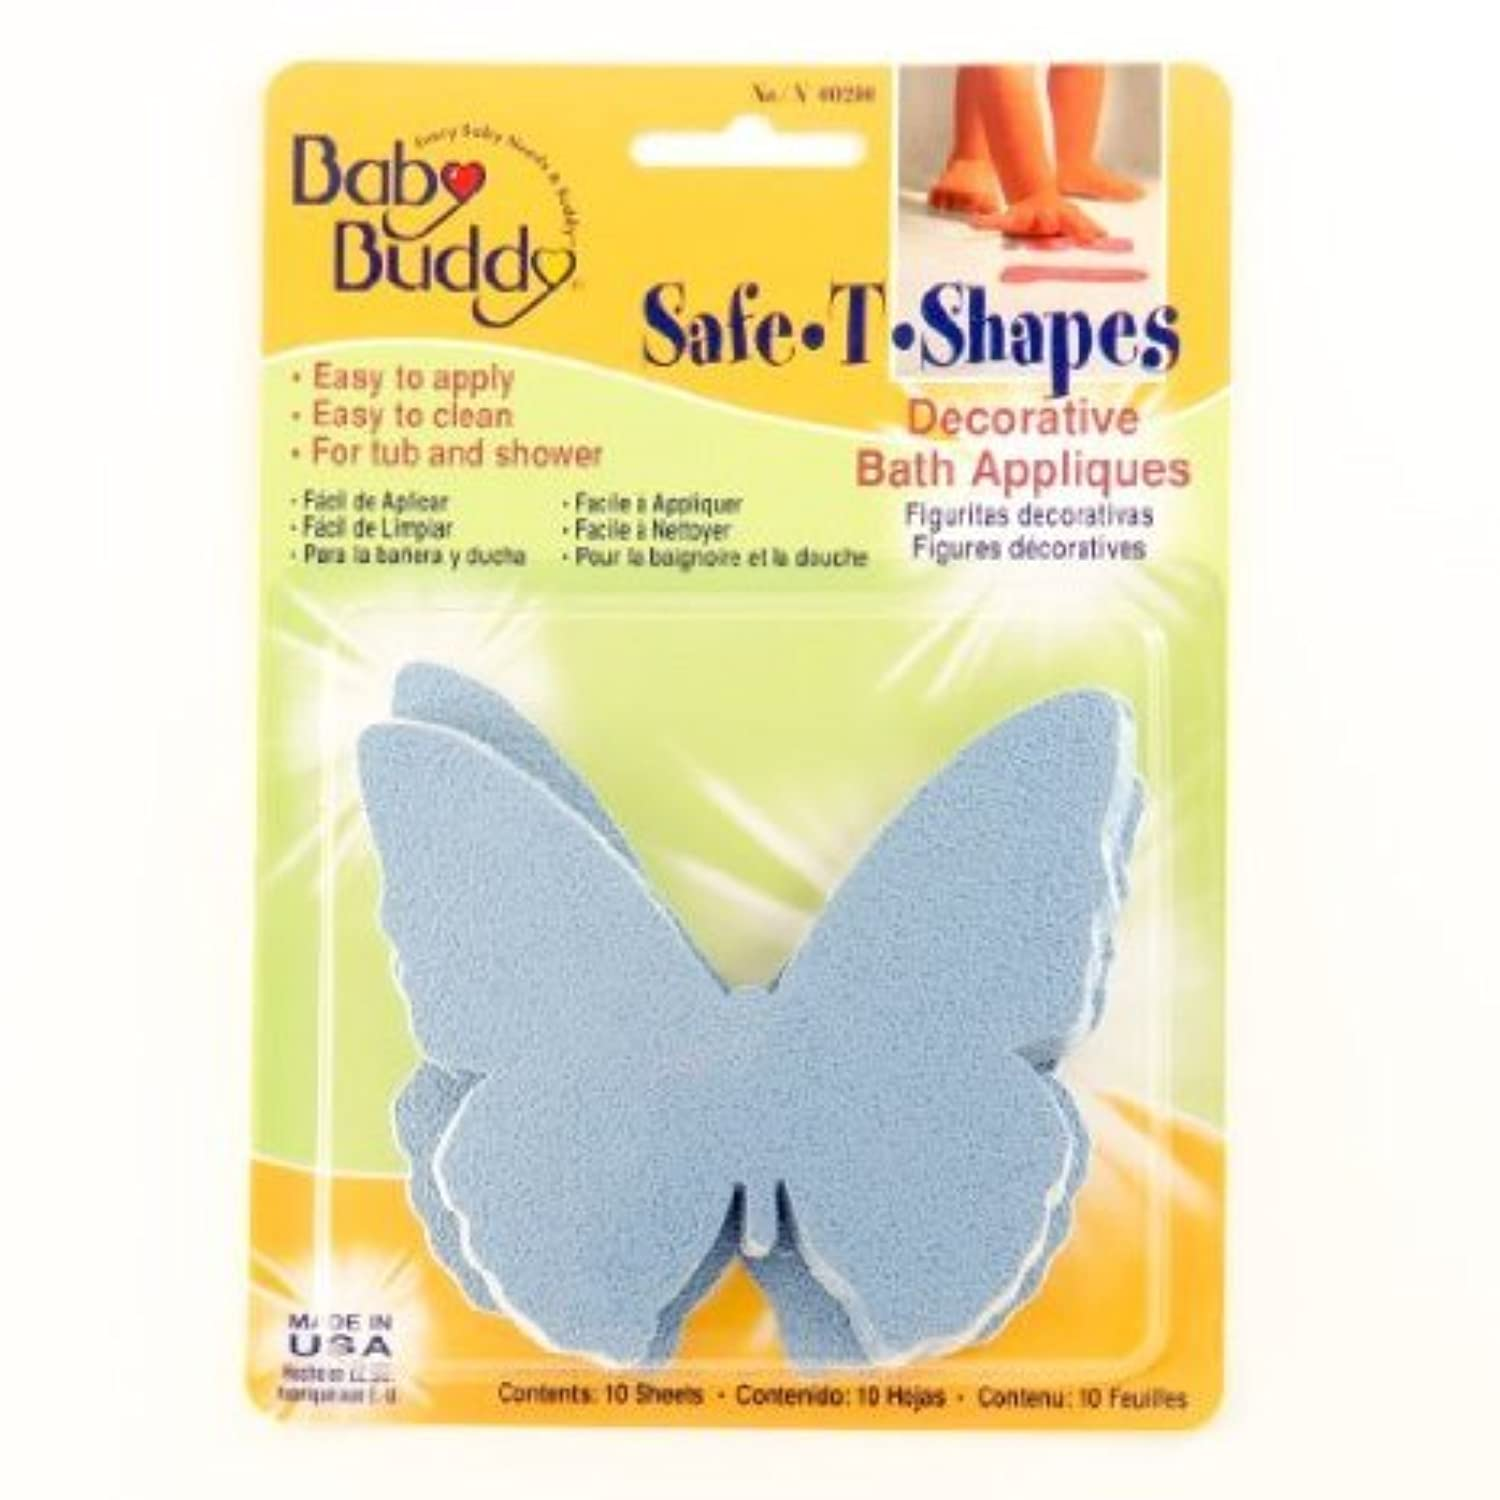 Baby Buddy BB Safe-T-Shapes Bath Appliques - Butterflies Case Pack 18 おもちゃ (並行輸入)